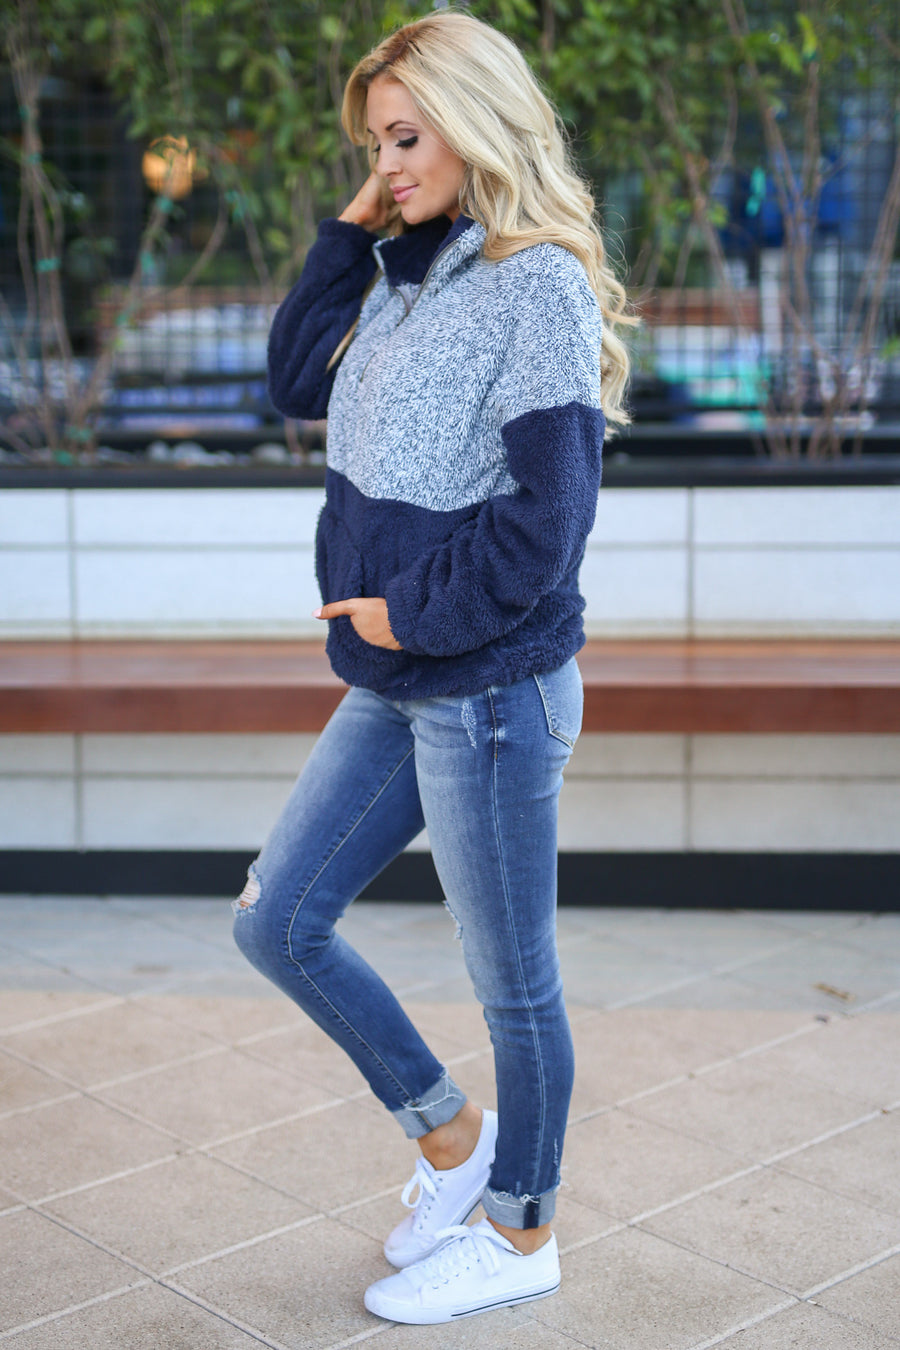 Meet Your Match Sweatshirt - Navy color block soft sweatshirt, zip collar, Closet Candy Boutique 1